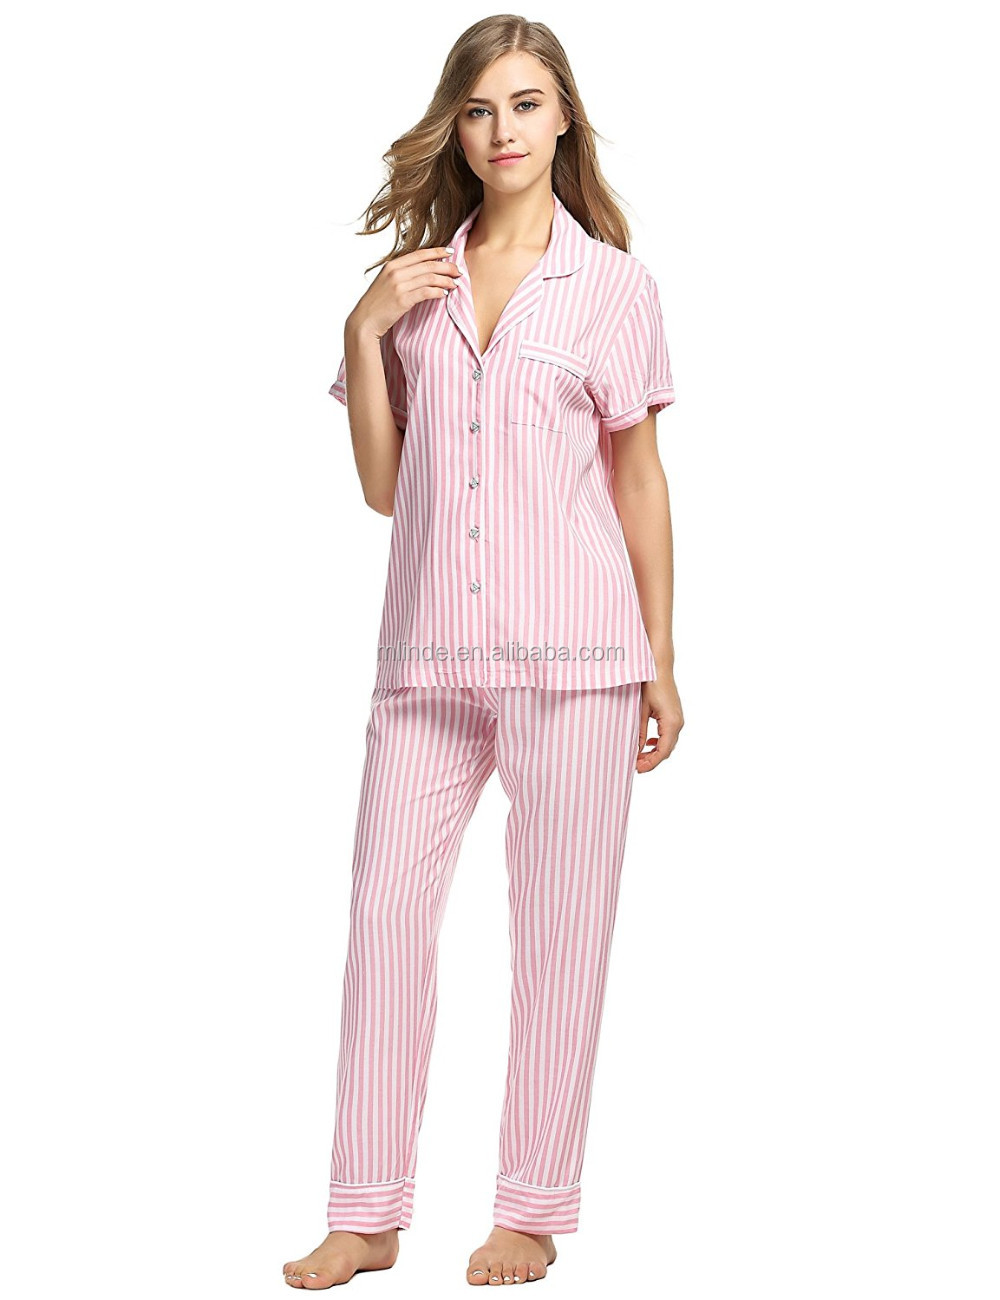 Get ready to get some cozy goodnight sleep ladies. * Sale For:1 Top + 1 pants * Material: Cotton * Color: Blue Bimba Cotton Button-Down Shirt With Pajama Capri Pants Night Wear Set Lounge Wea. $ Go to Cart. Alert. Congratulations, you have qualified for free shipping from this seller. Combine & save with this seller.